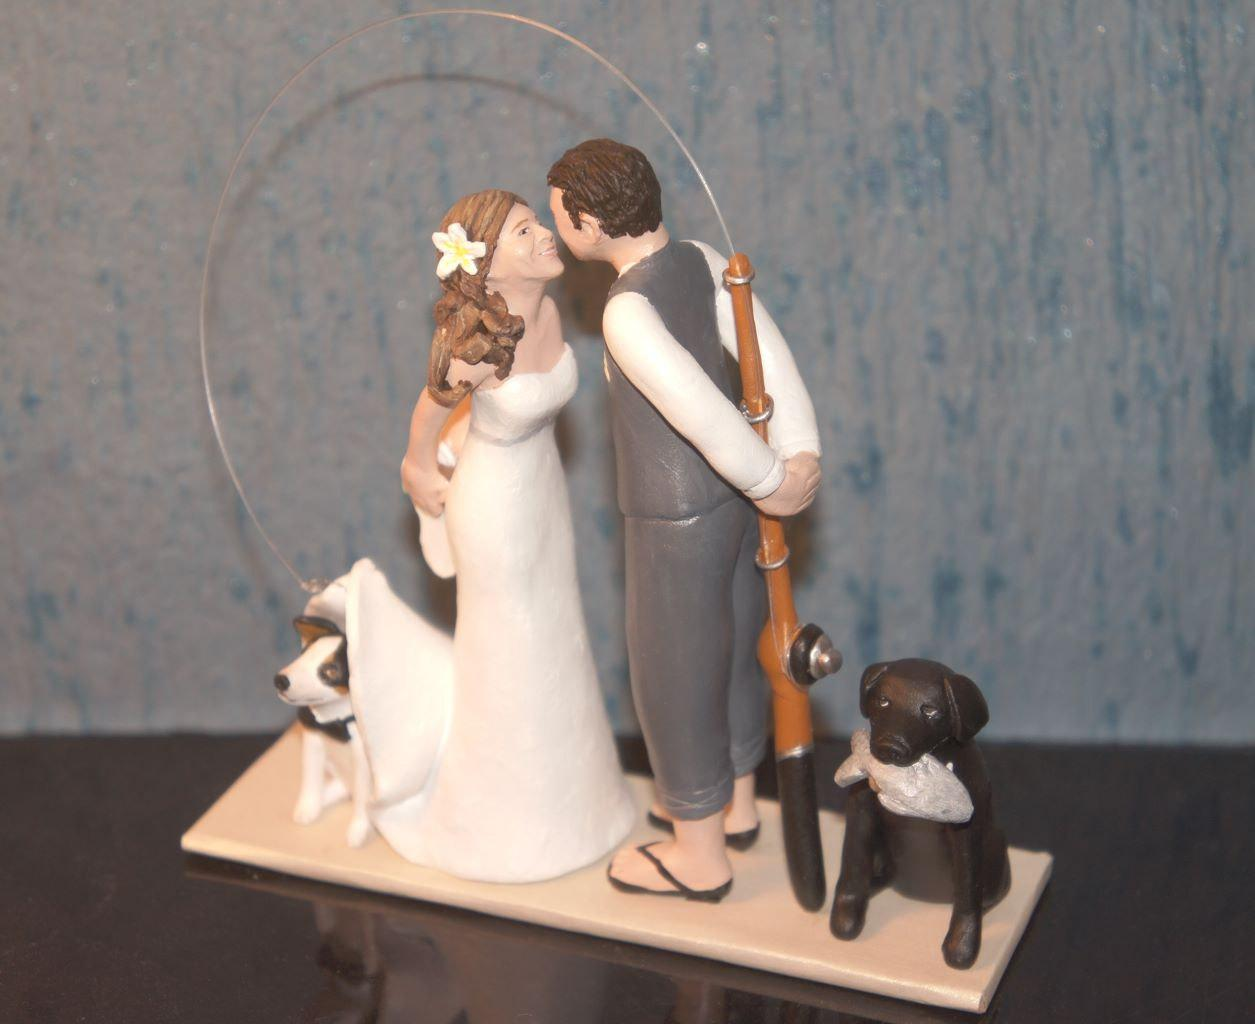 wedding cake toppers personalised uk personalized wedding cake toppers wedding decorations 26573